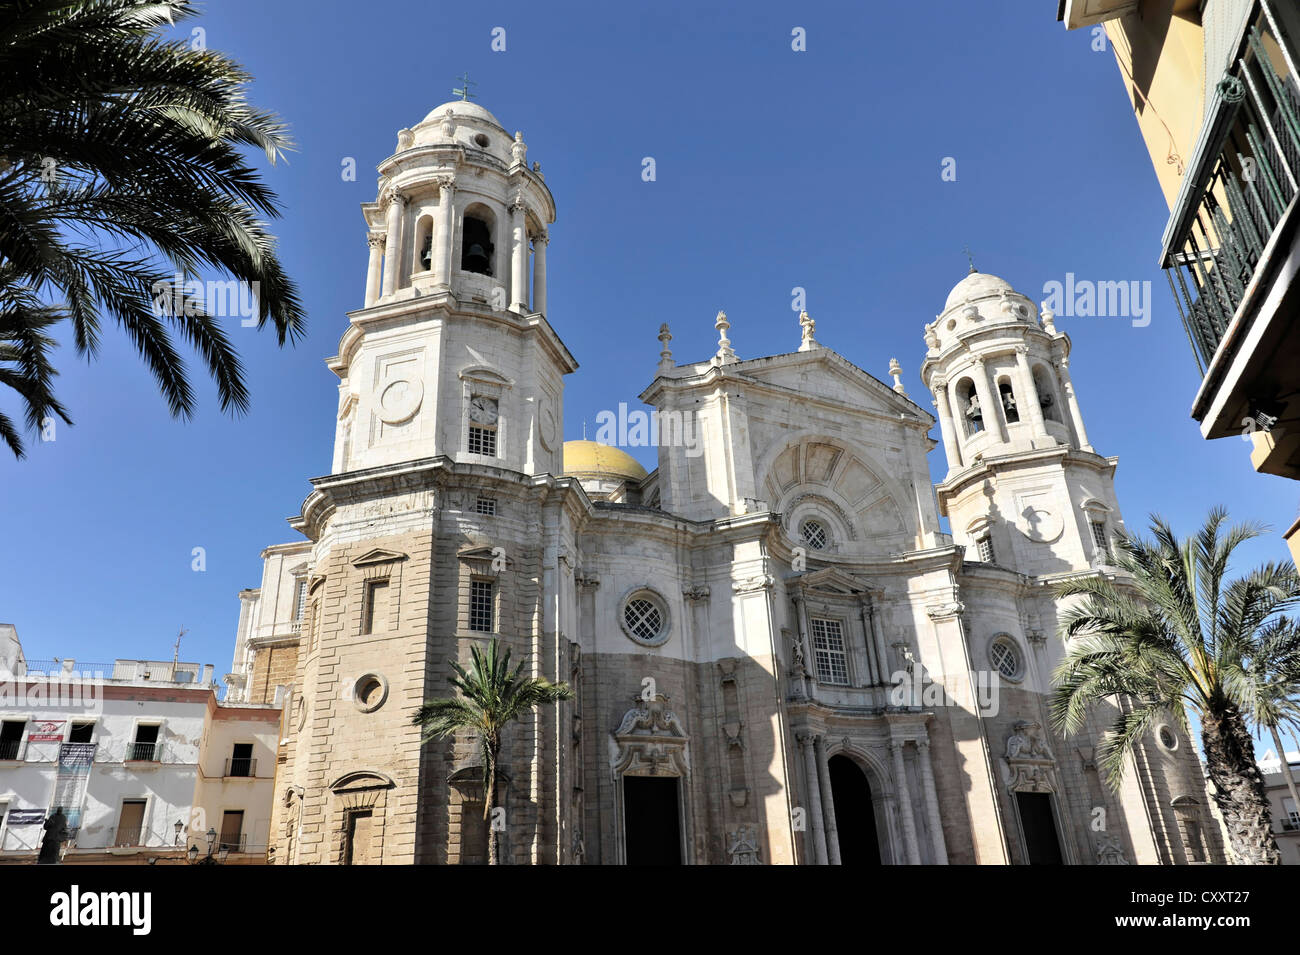 Catedral Nueva, New Cathedral, construction started in 1722, Cadiz, Andalusia, Spain, Europe - Stock Image